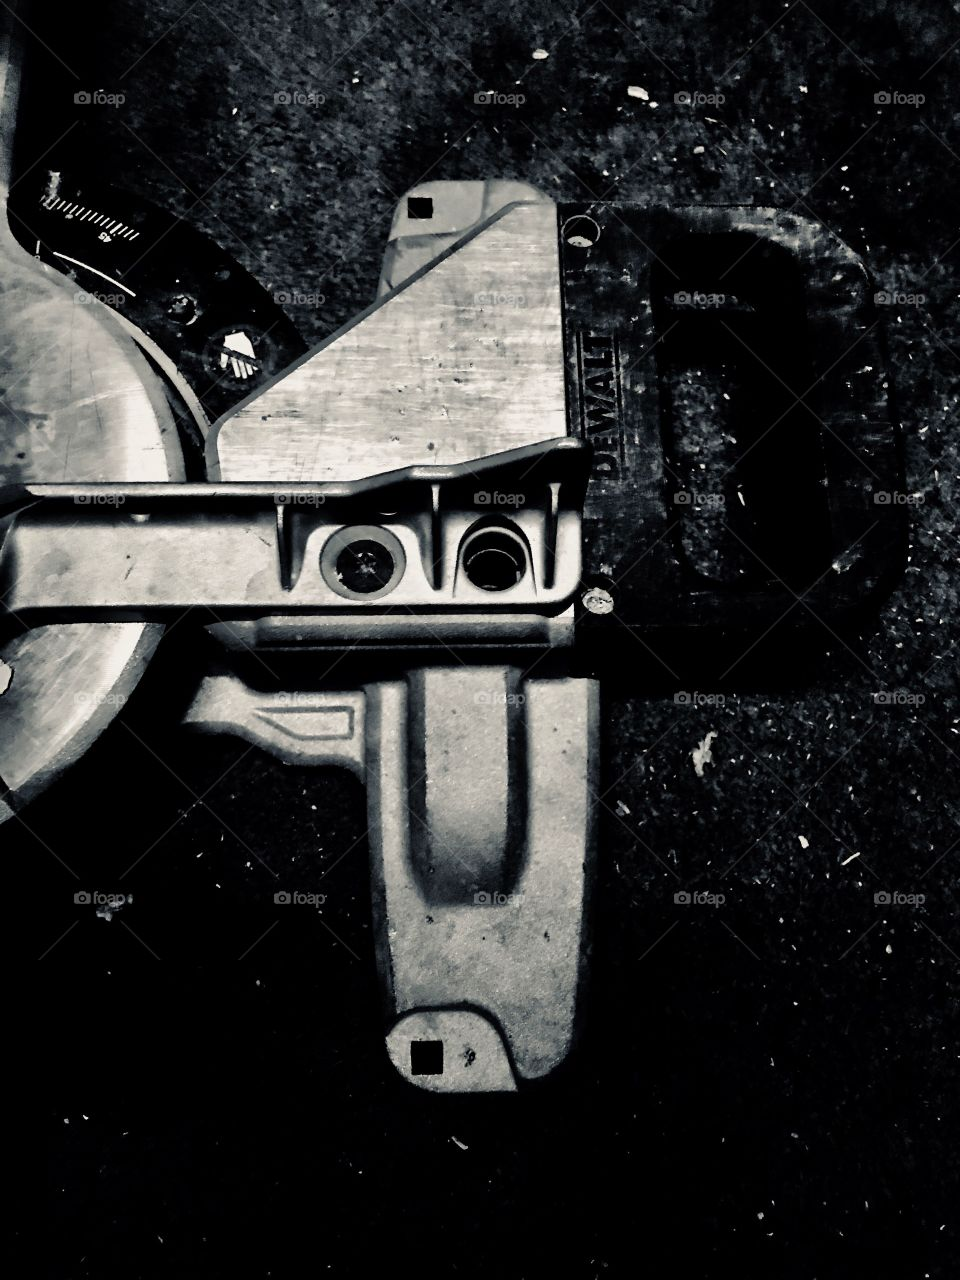 Monochrome shot of a table saw!